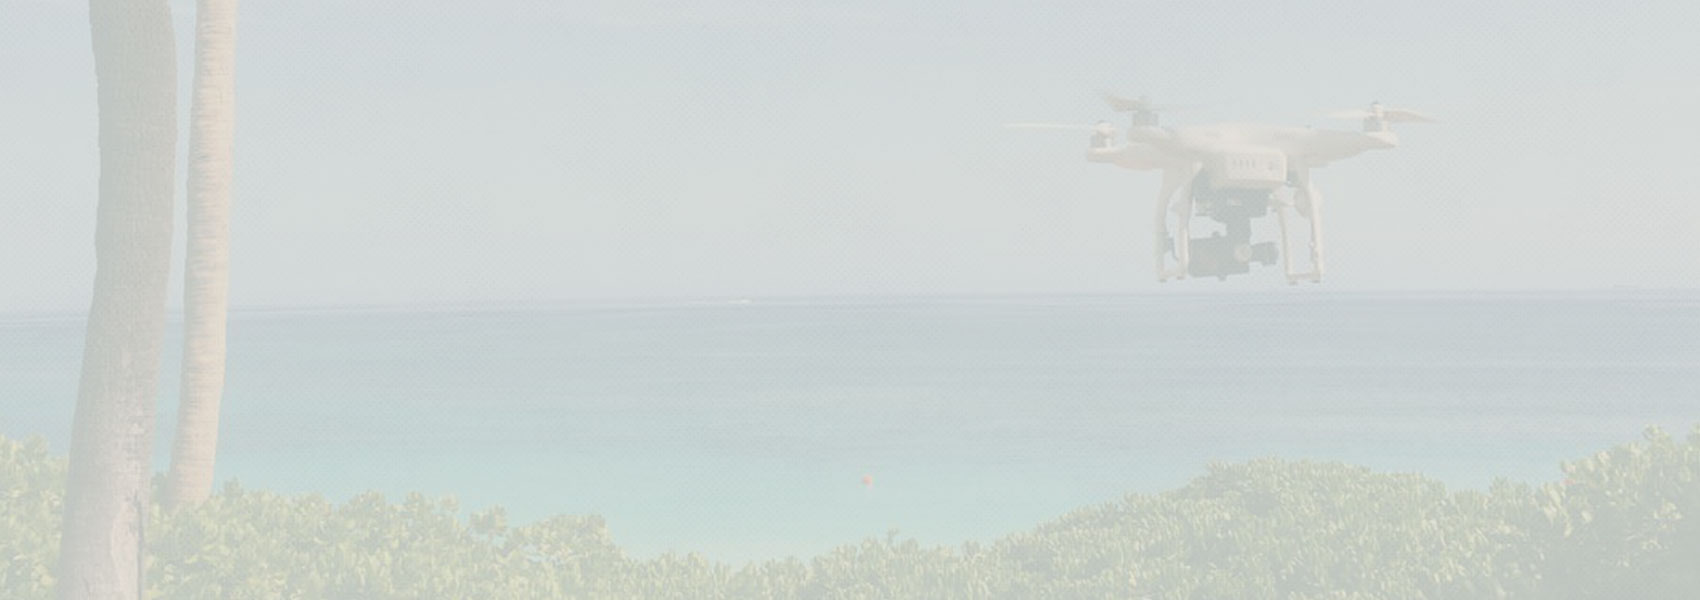 A drone doing photography of the ocean